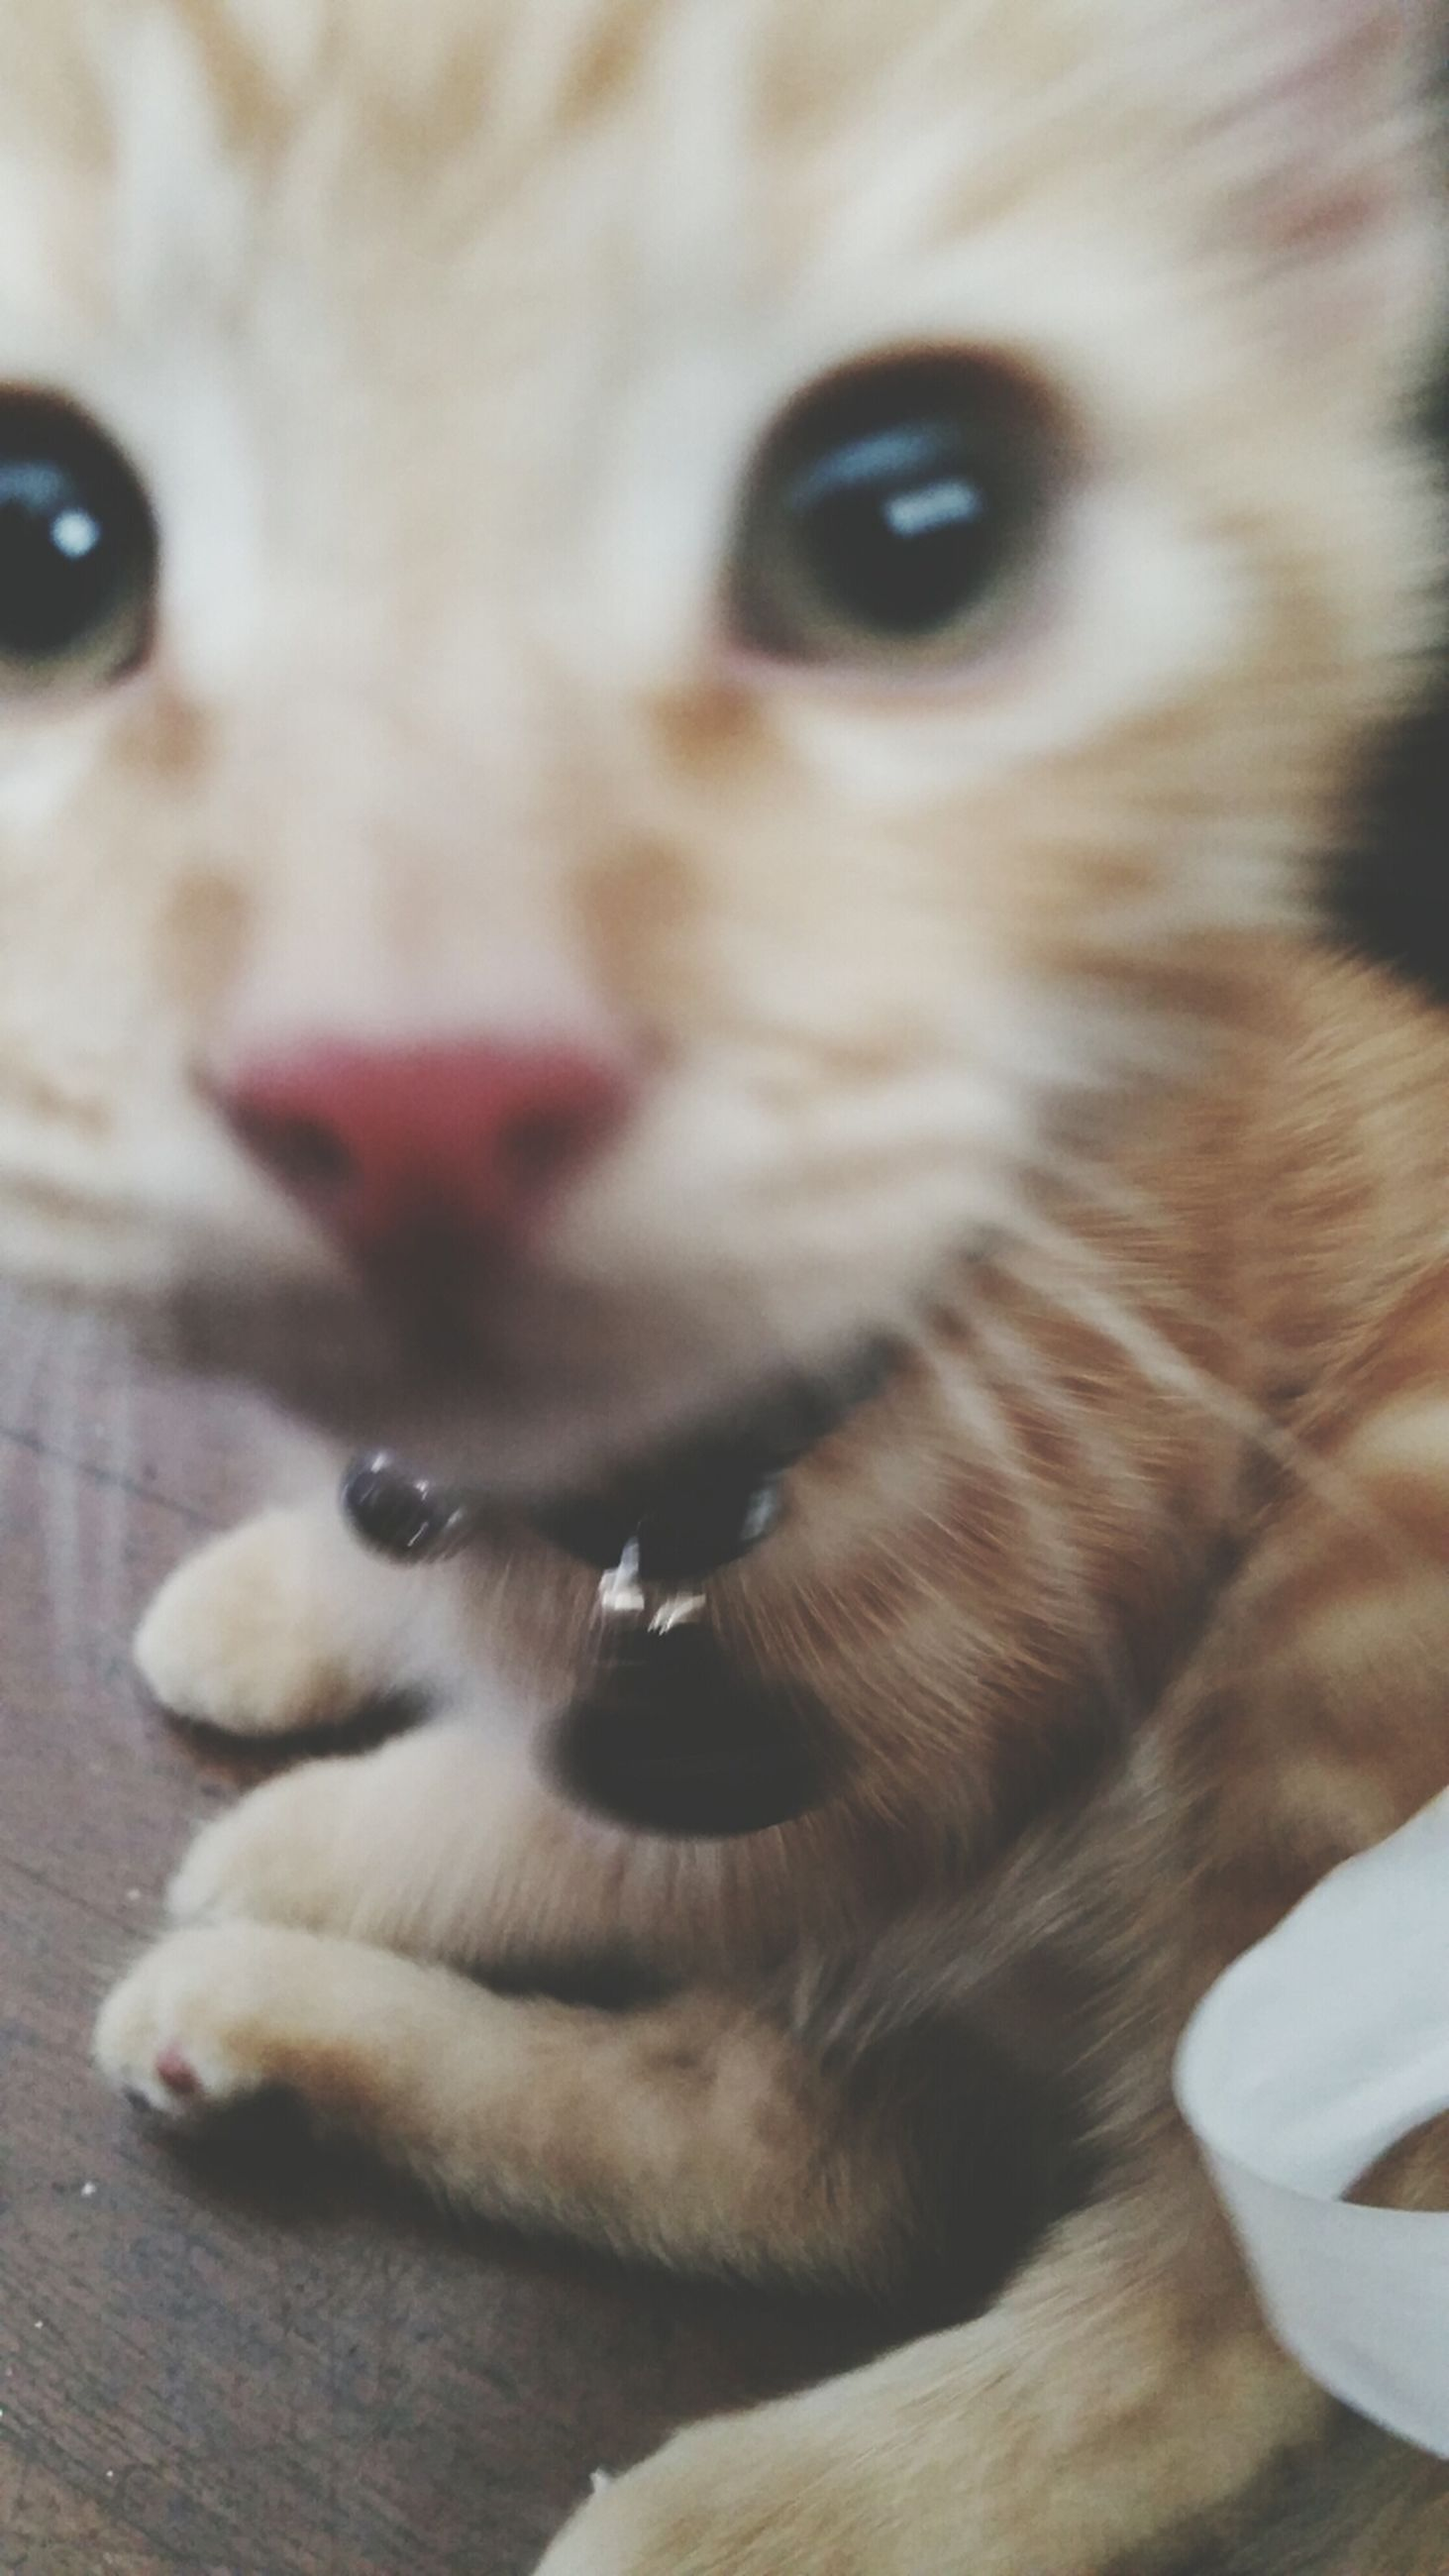 pets, domestic animals, animal themes, one animal, mammal, indoors, dog, close-up, portrait, animal head, looking at camera, domestic cat, relaxation, animal body part, focus on foreground, no people, home interior, cat, whisker